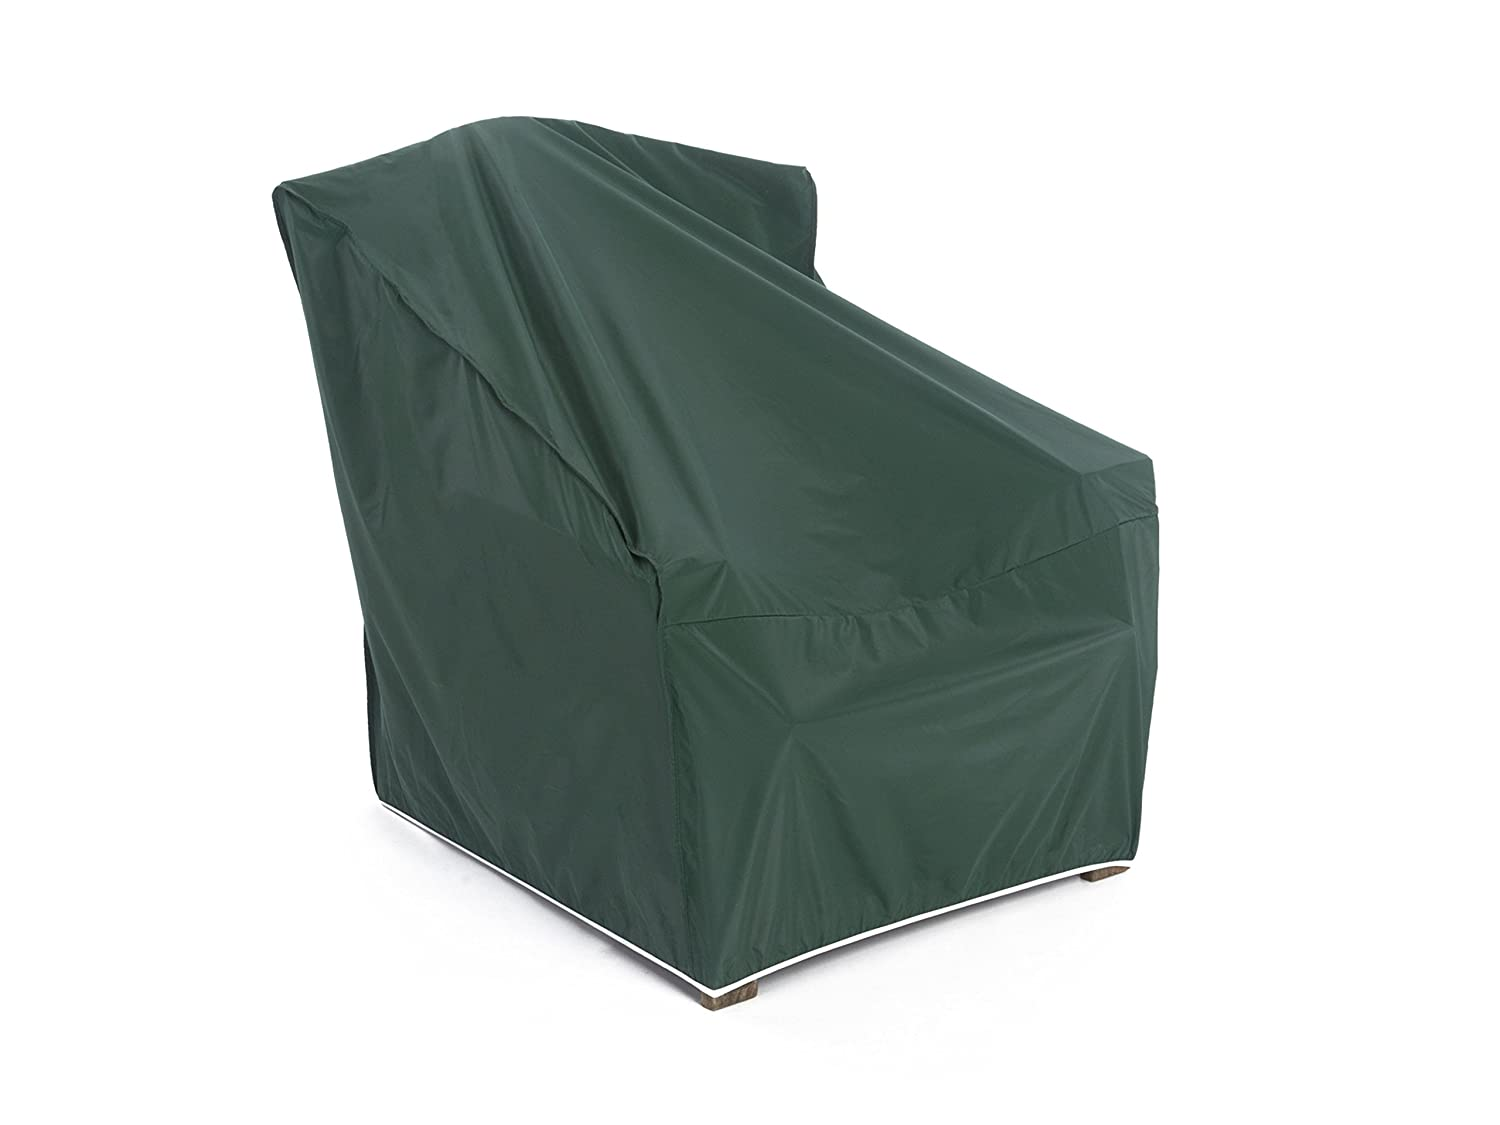 amazon outdoor furniture covers. Covermates Patio Furniture Covers. Amazon.com : CoverMates - Outdoor Chair Cover 28W X Amazon Covers A